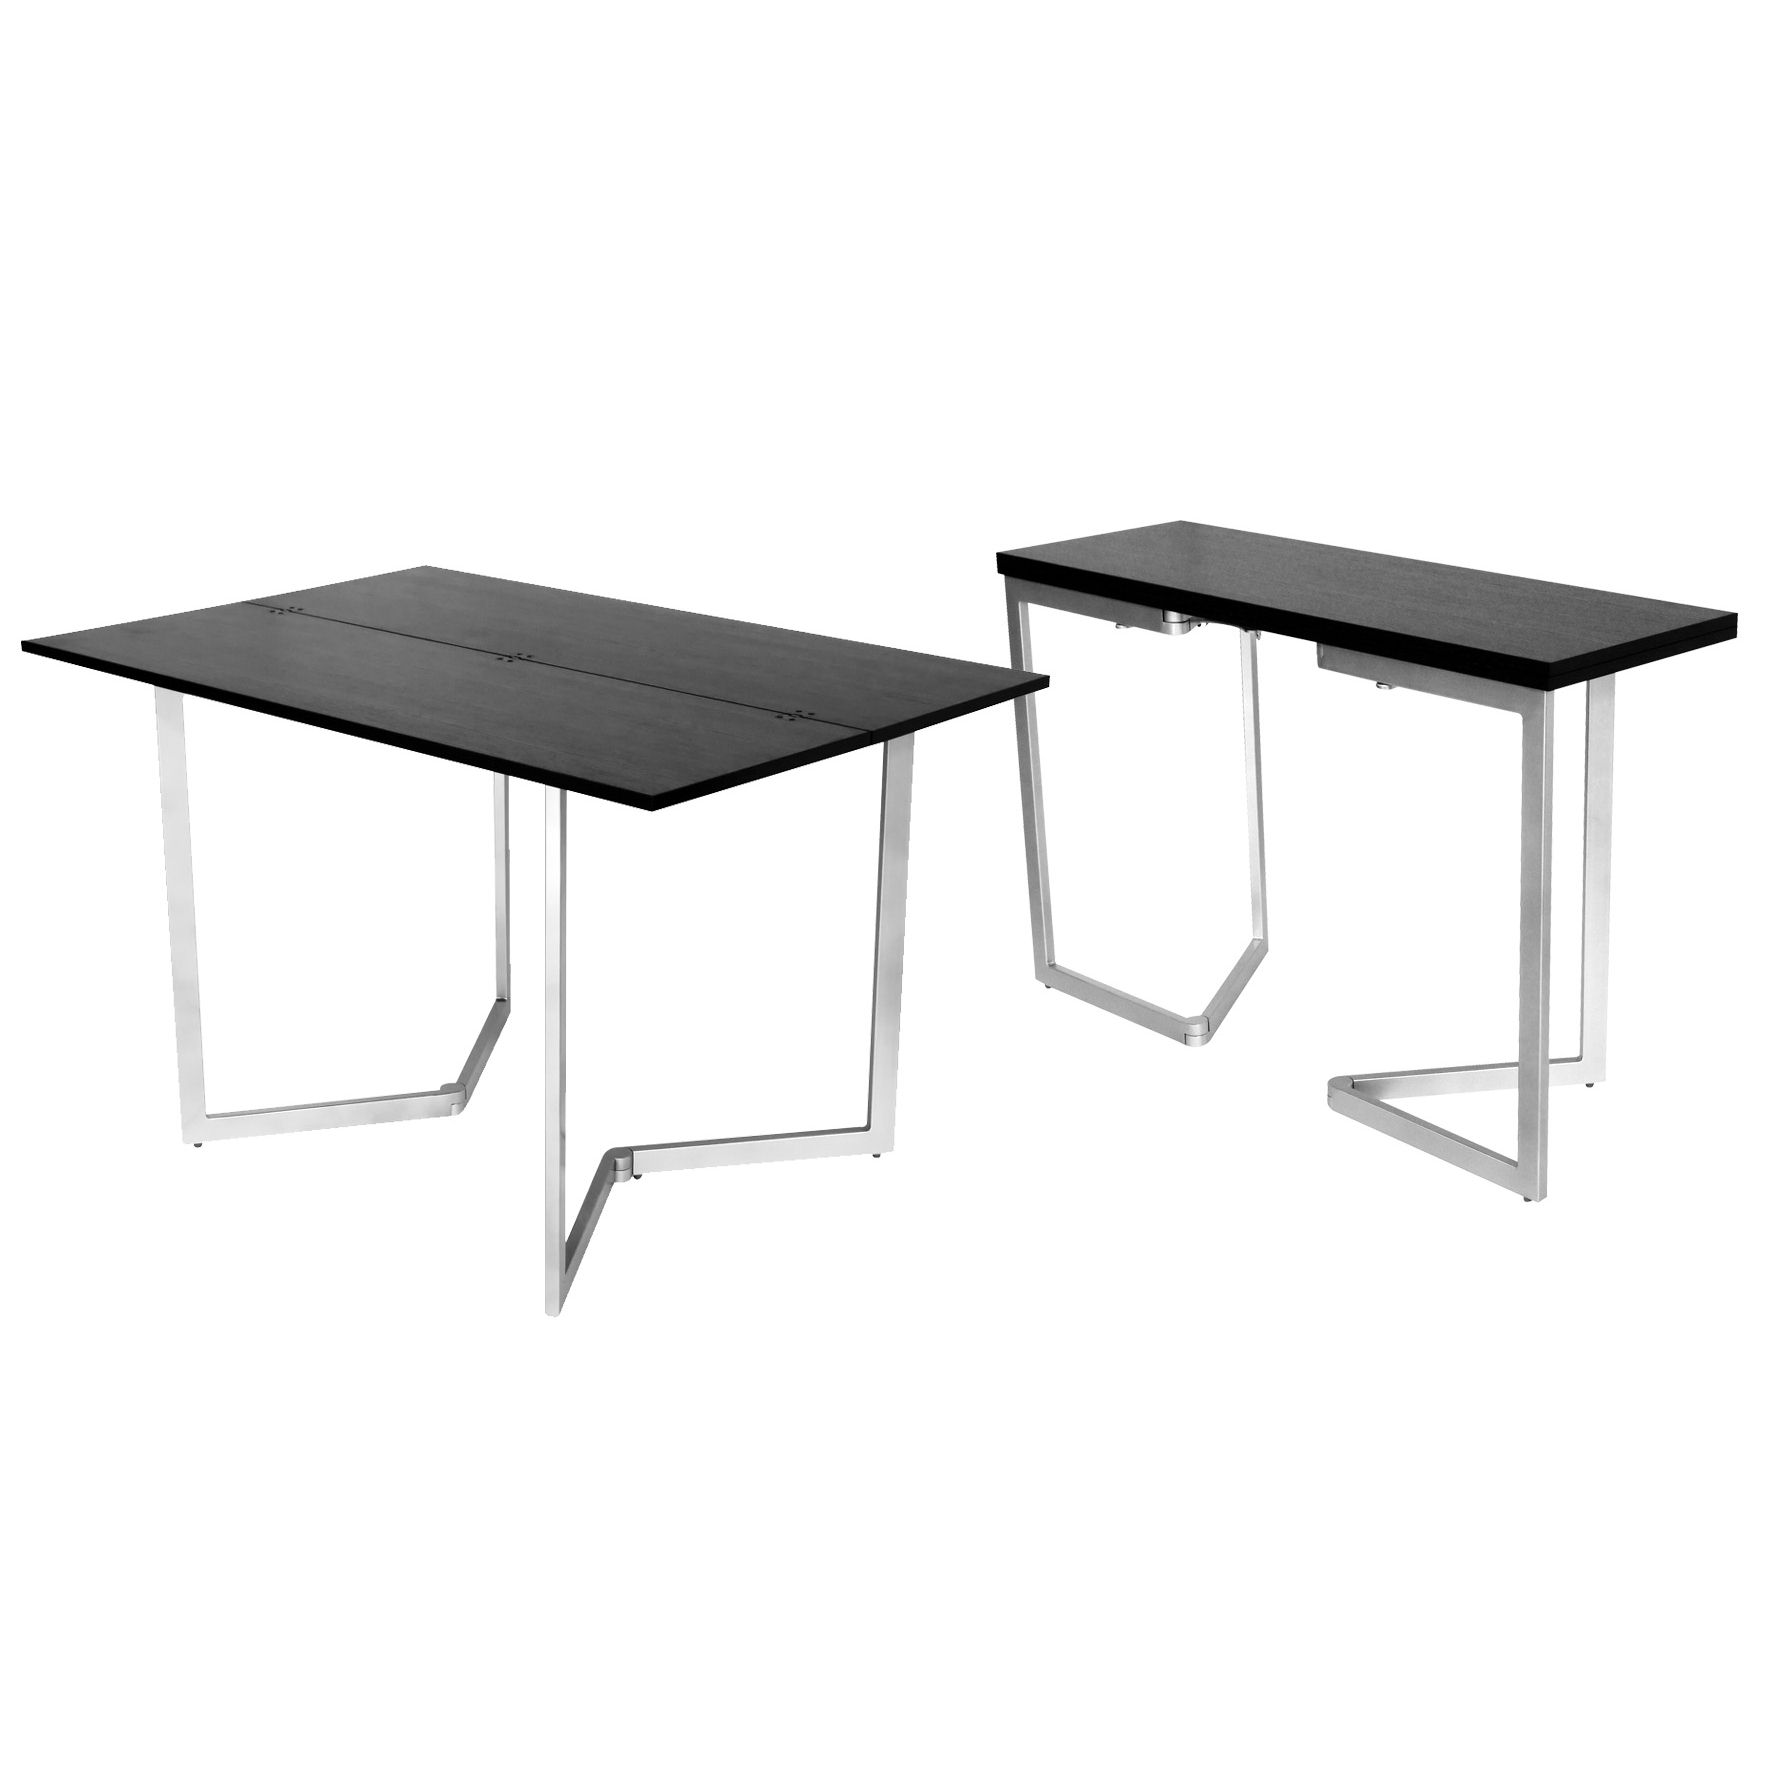 Deco in paris table console extensible wenge talia for Table a rallonge console